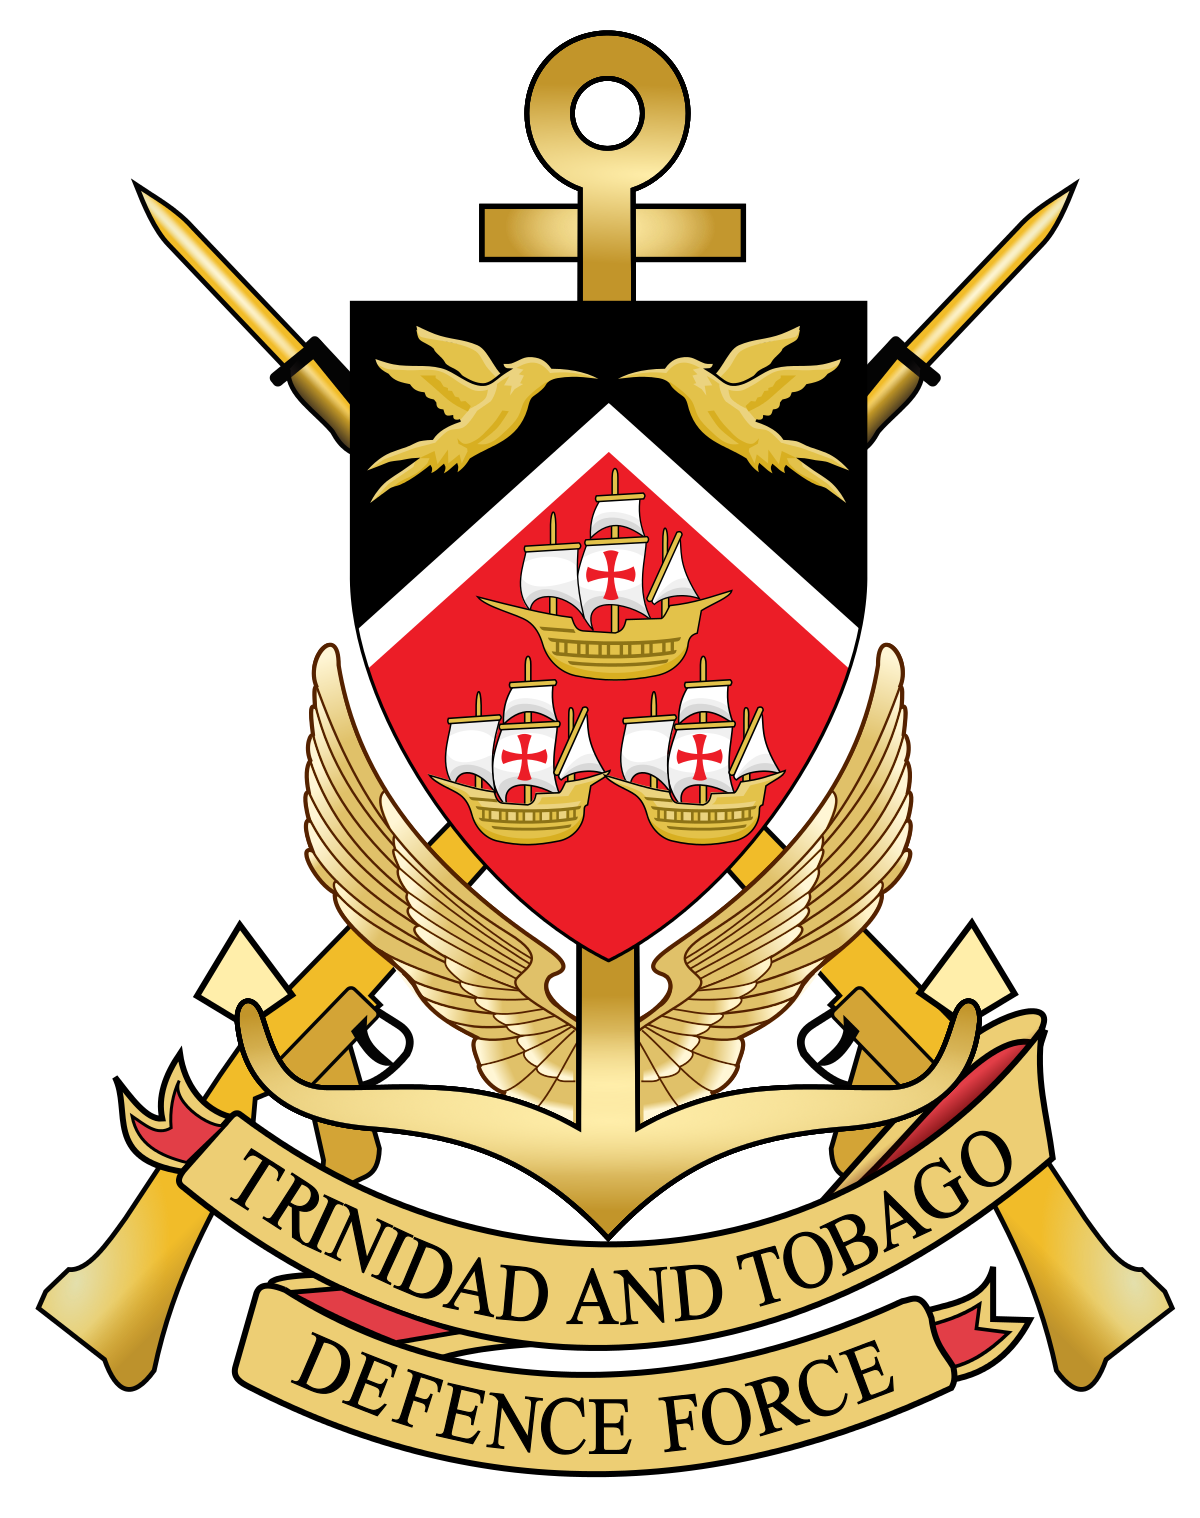 Trinidad and tobago defence. Pilot clipart security guard logo